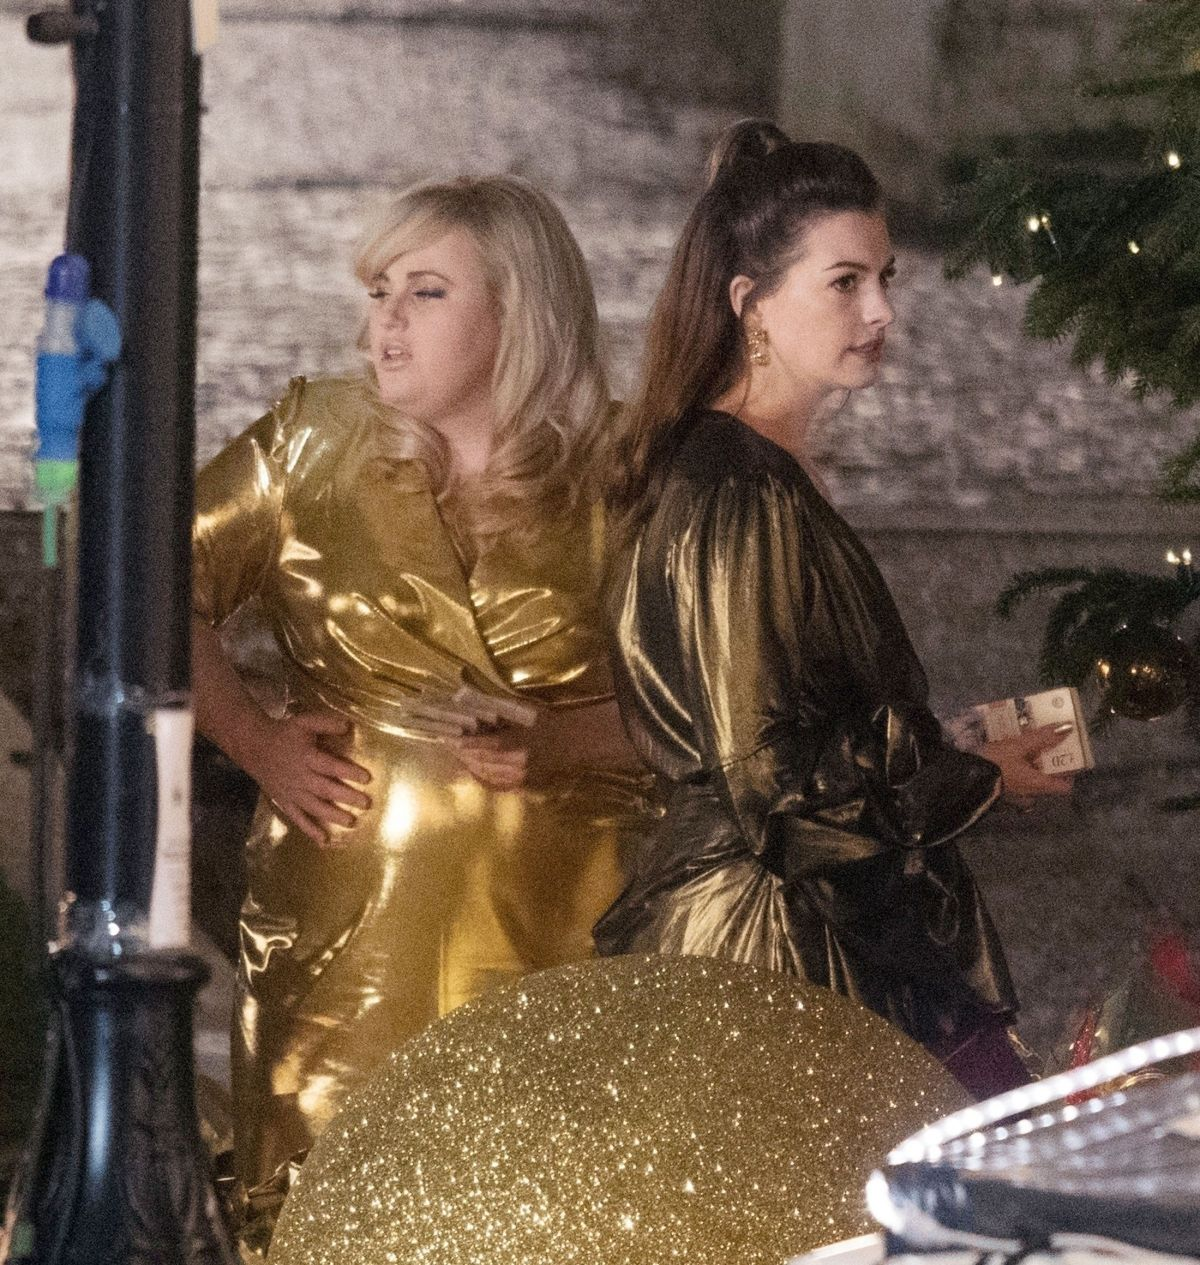 ANNE HATHAWAY And REBEL WILSON On The Set Of THe Hustle In